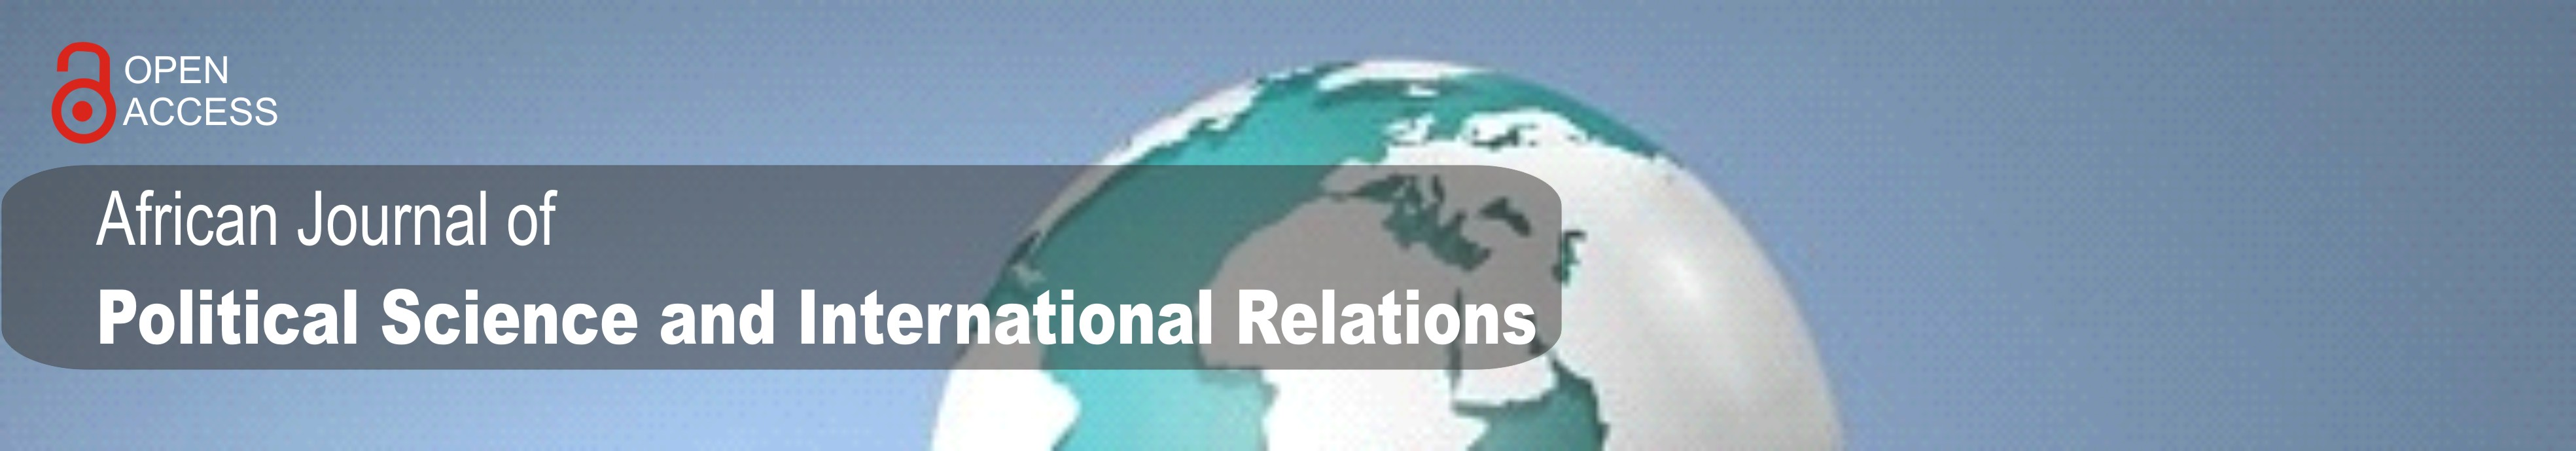 African Journal of Political Science and International Relations